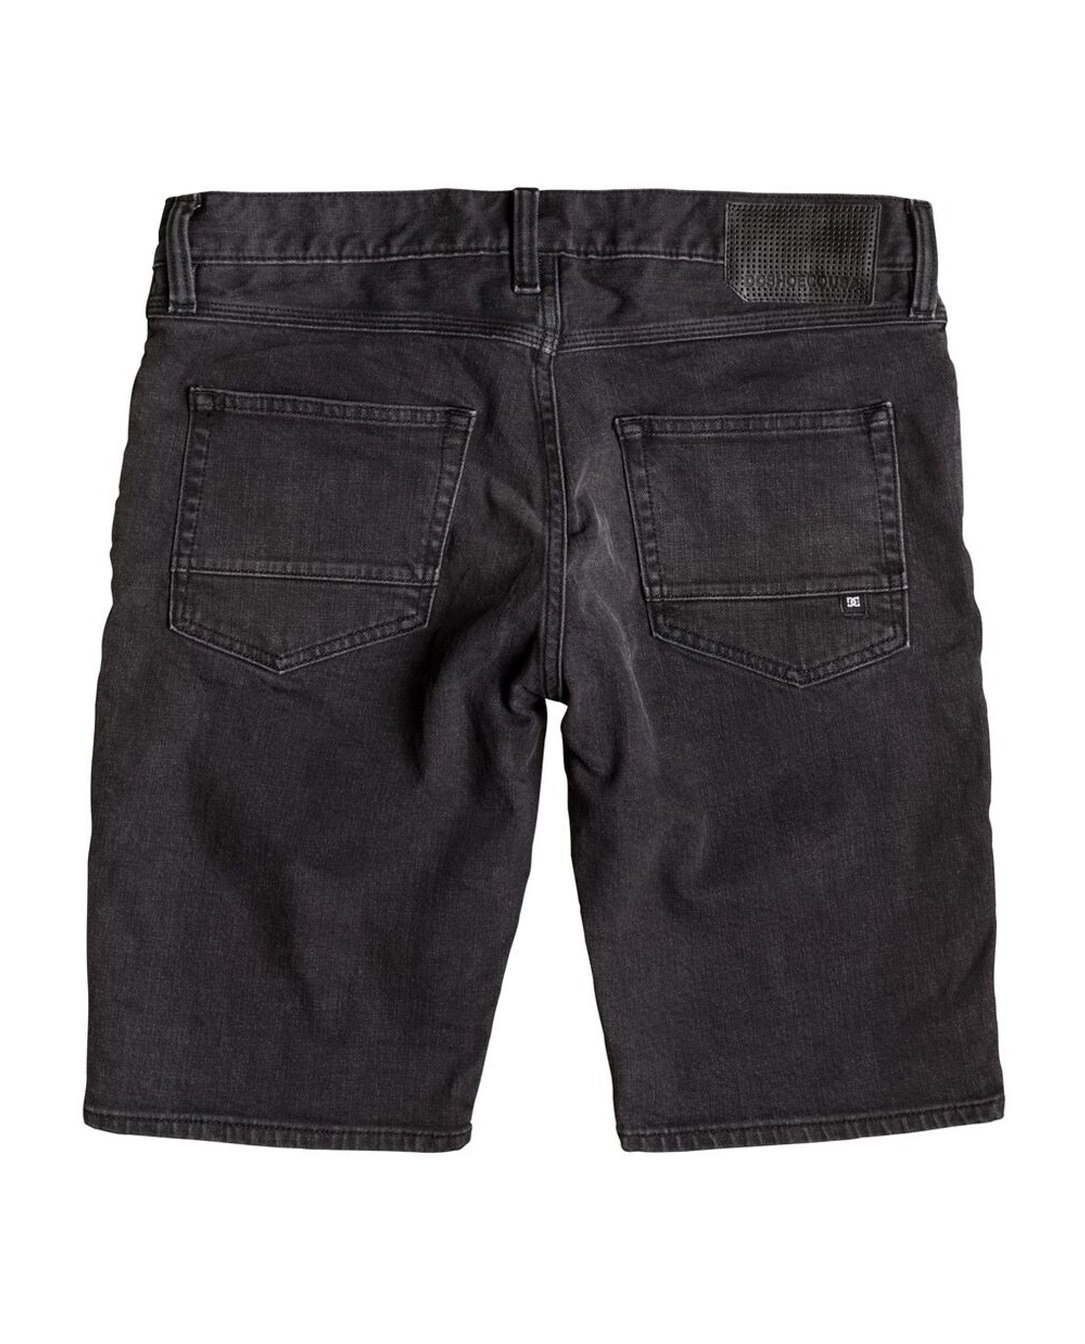 DC SHOES SHORT WASHED STRAIGHT KPVW - LM BOARD STORE